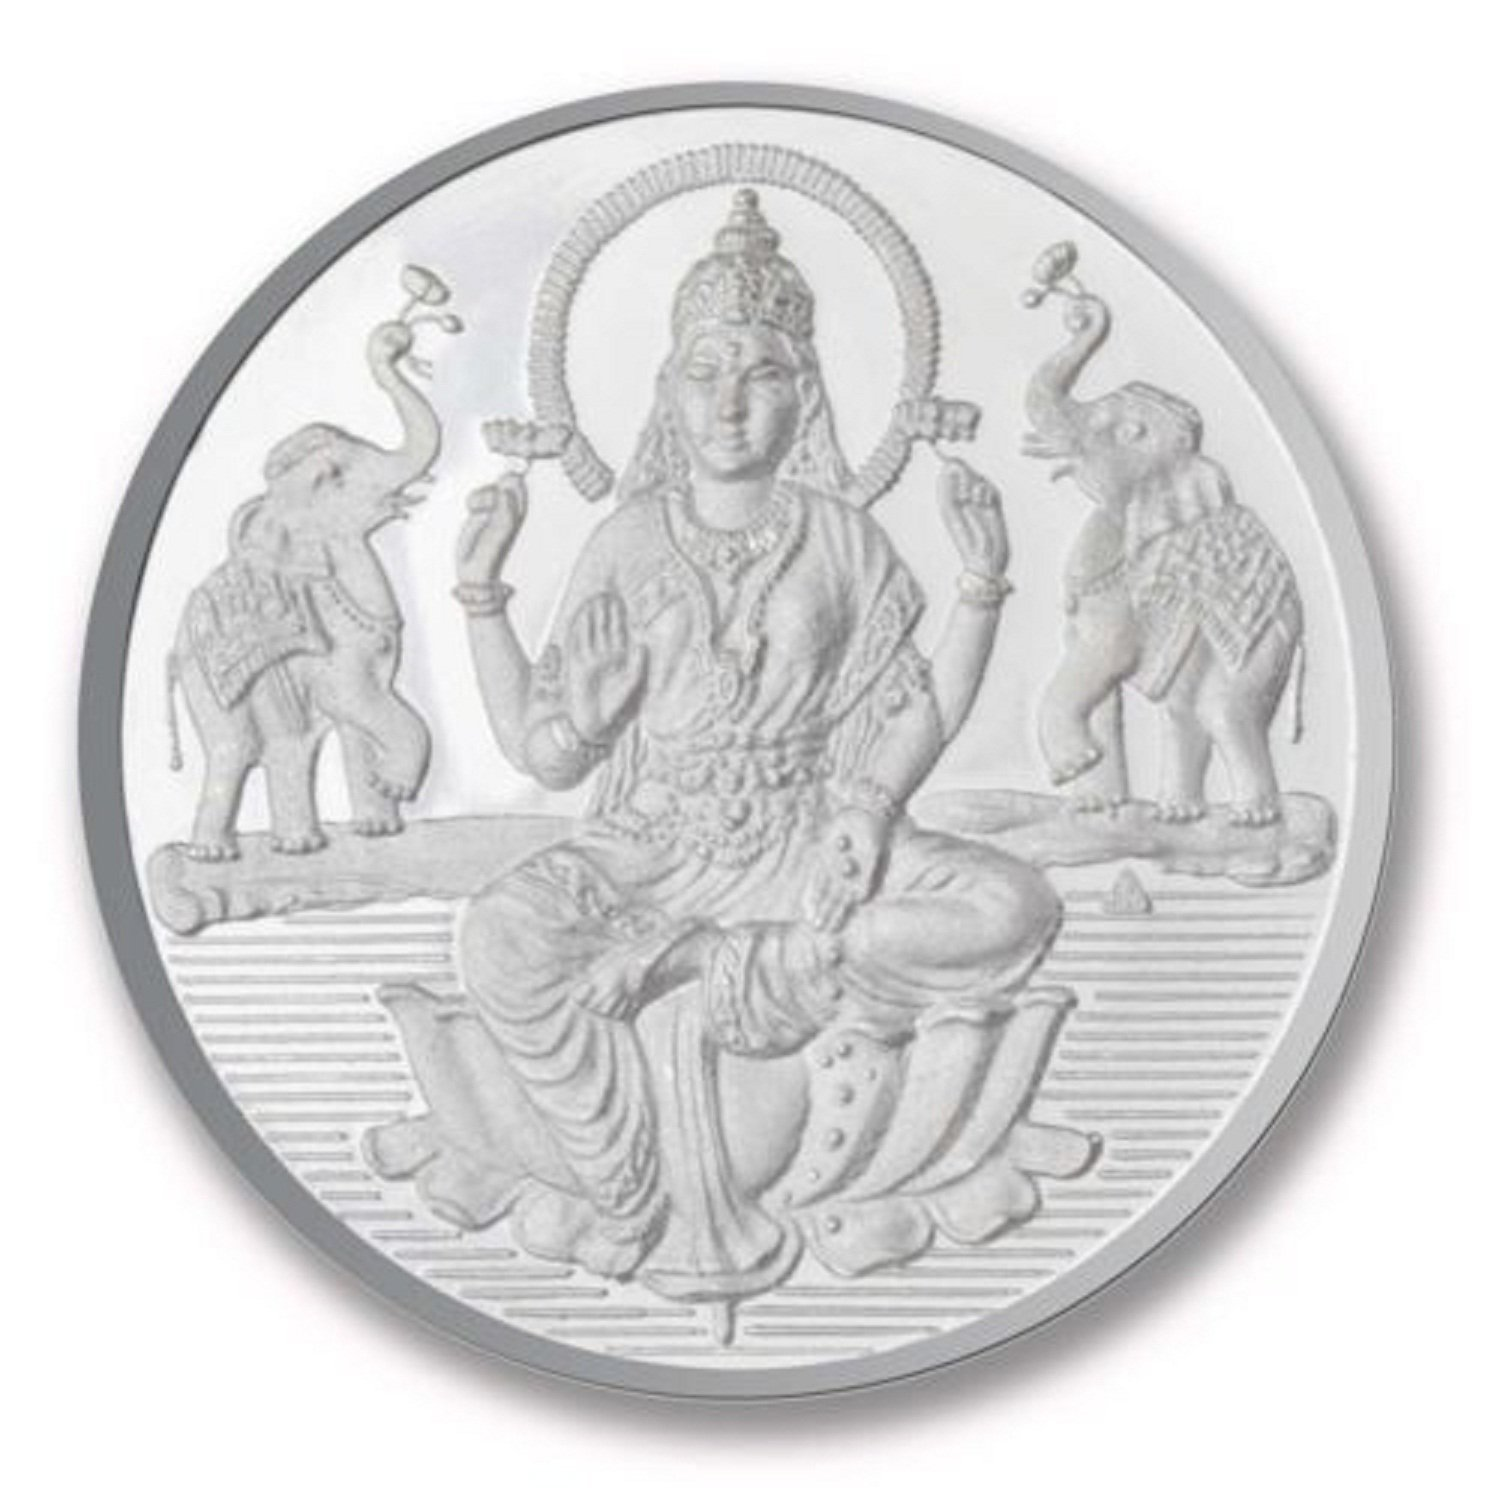 Amazon.com: Ananth Jewels BIS Hallmarked 999 Purity Silver Coin ...